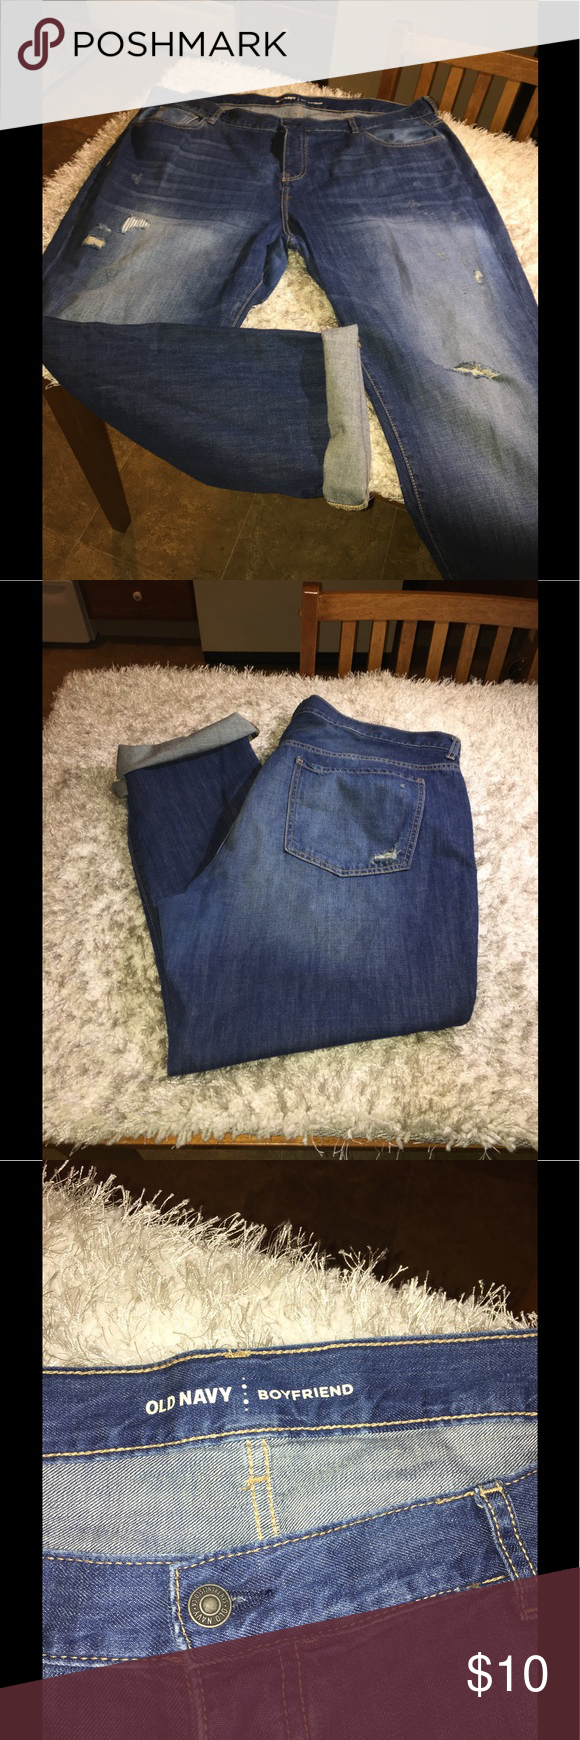 Old Navy Boyfriend Jeans Size 18 Old Navy Boyfriend jeans. Lightly destructed style.  Medium blue rinse color. Size 18. Inseam is 30.5 inches long.  Great condition.   Important:   All items are freshly laundered as applicable prior to shipping (new items and shoes excluded).  Not all my items are from pet/smoke free homes.  Price is reduced to reflect this!   Thank you for looking! Old Navy Jeans Boyfriend